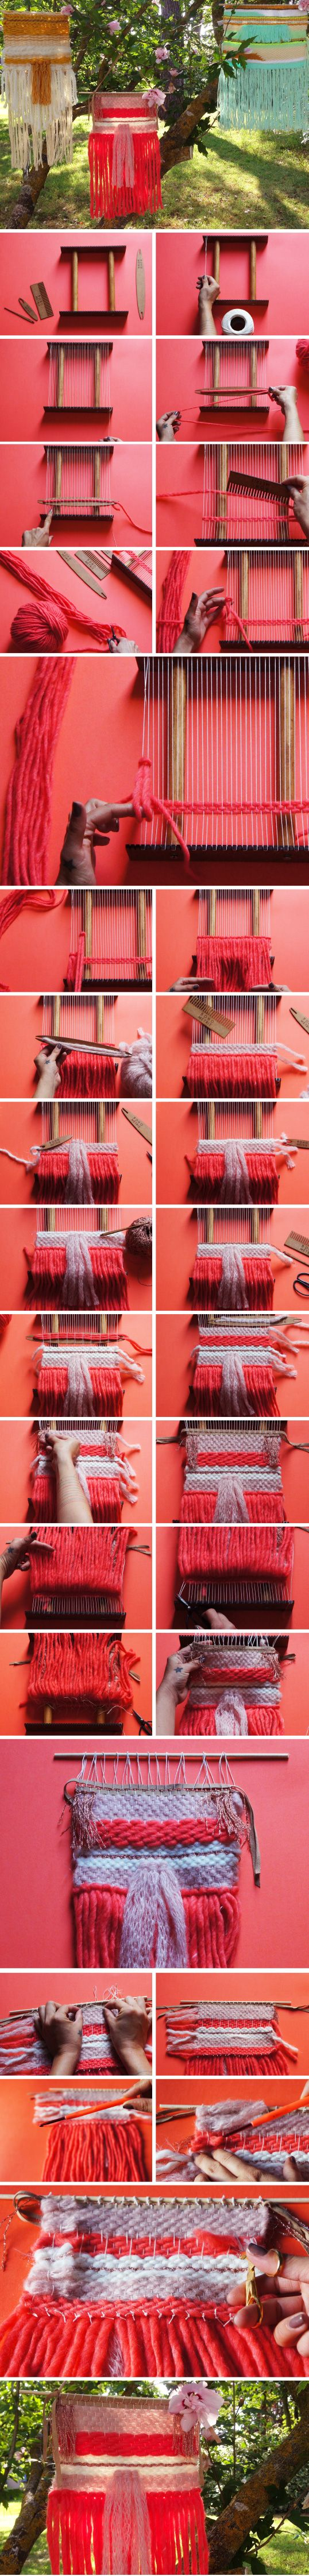 DIY WEAVING tutoriel for beginners stepper and technical weaving kit and accessories available on www.bohometrie.com